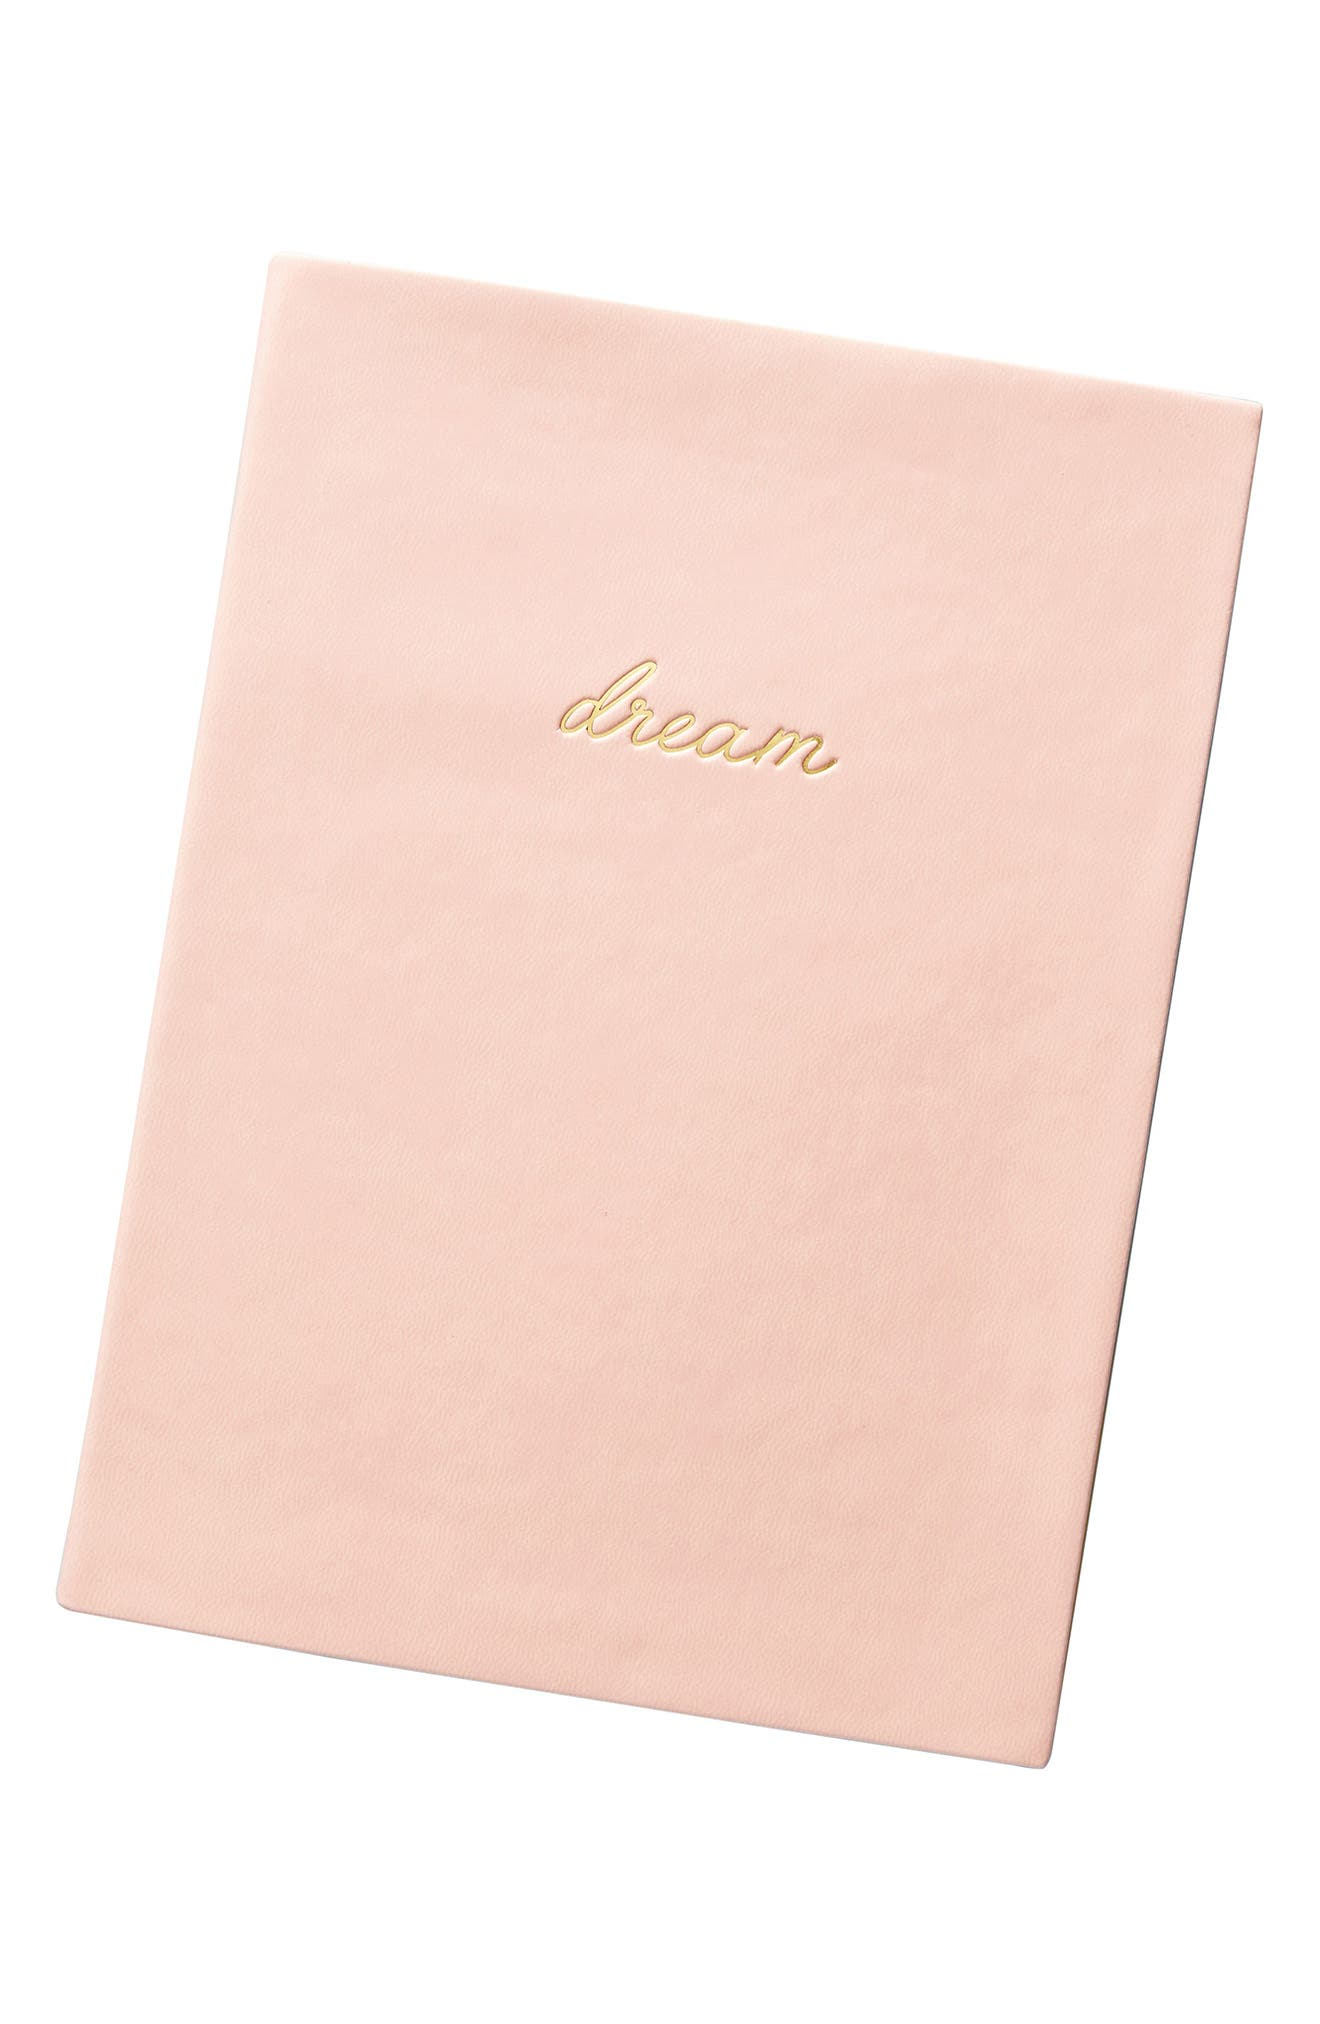 Dream & Scheme Journal,                             Alternate thumbnail 6, color,                             Pink